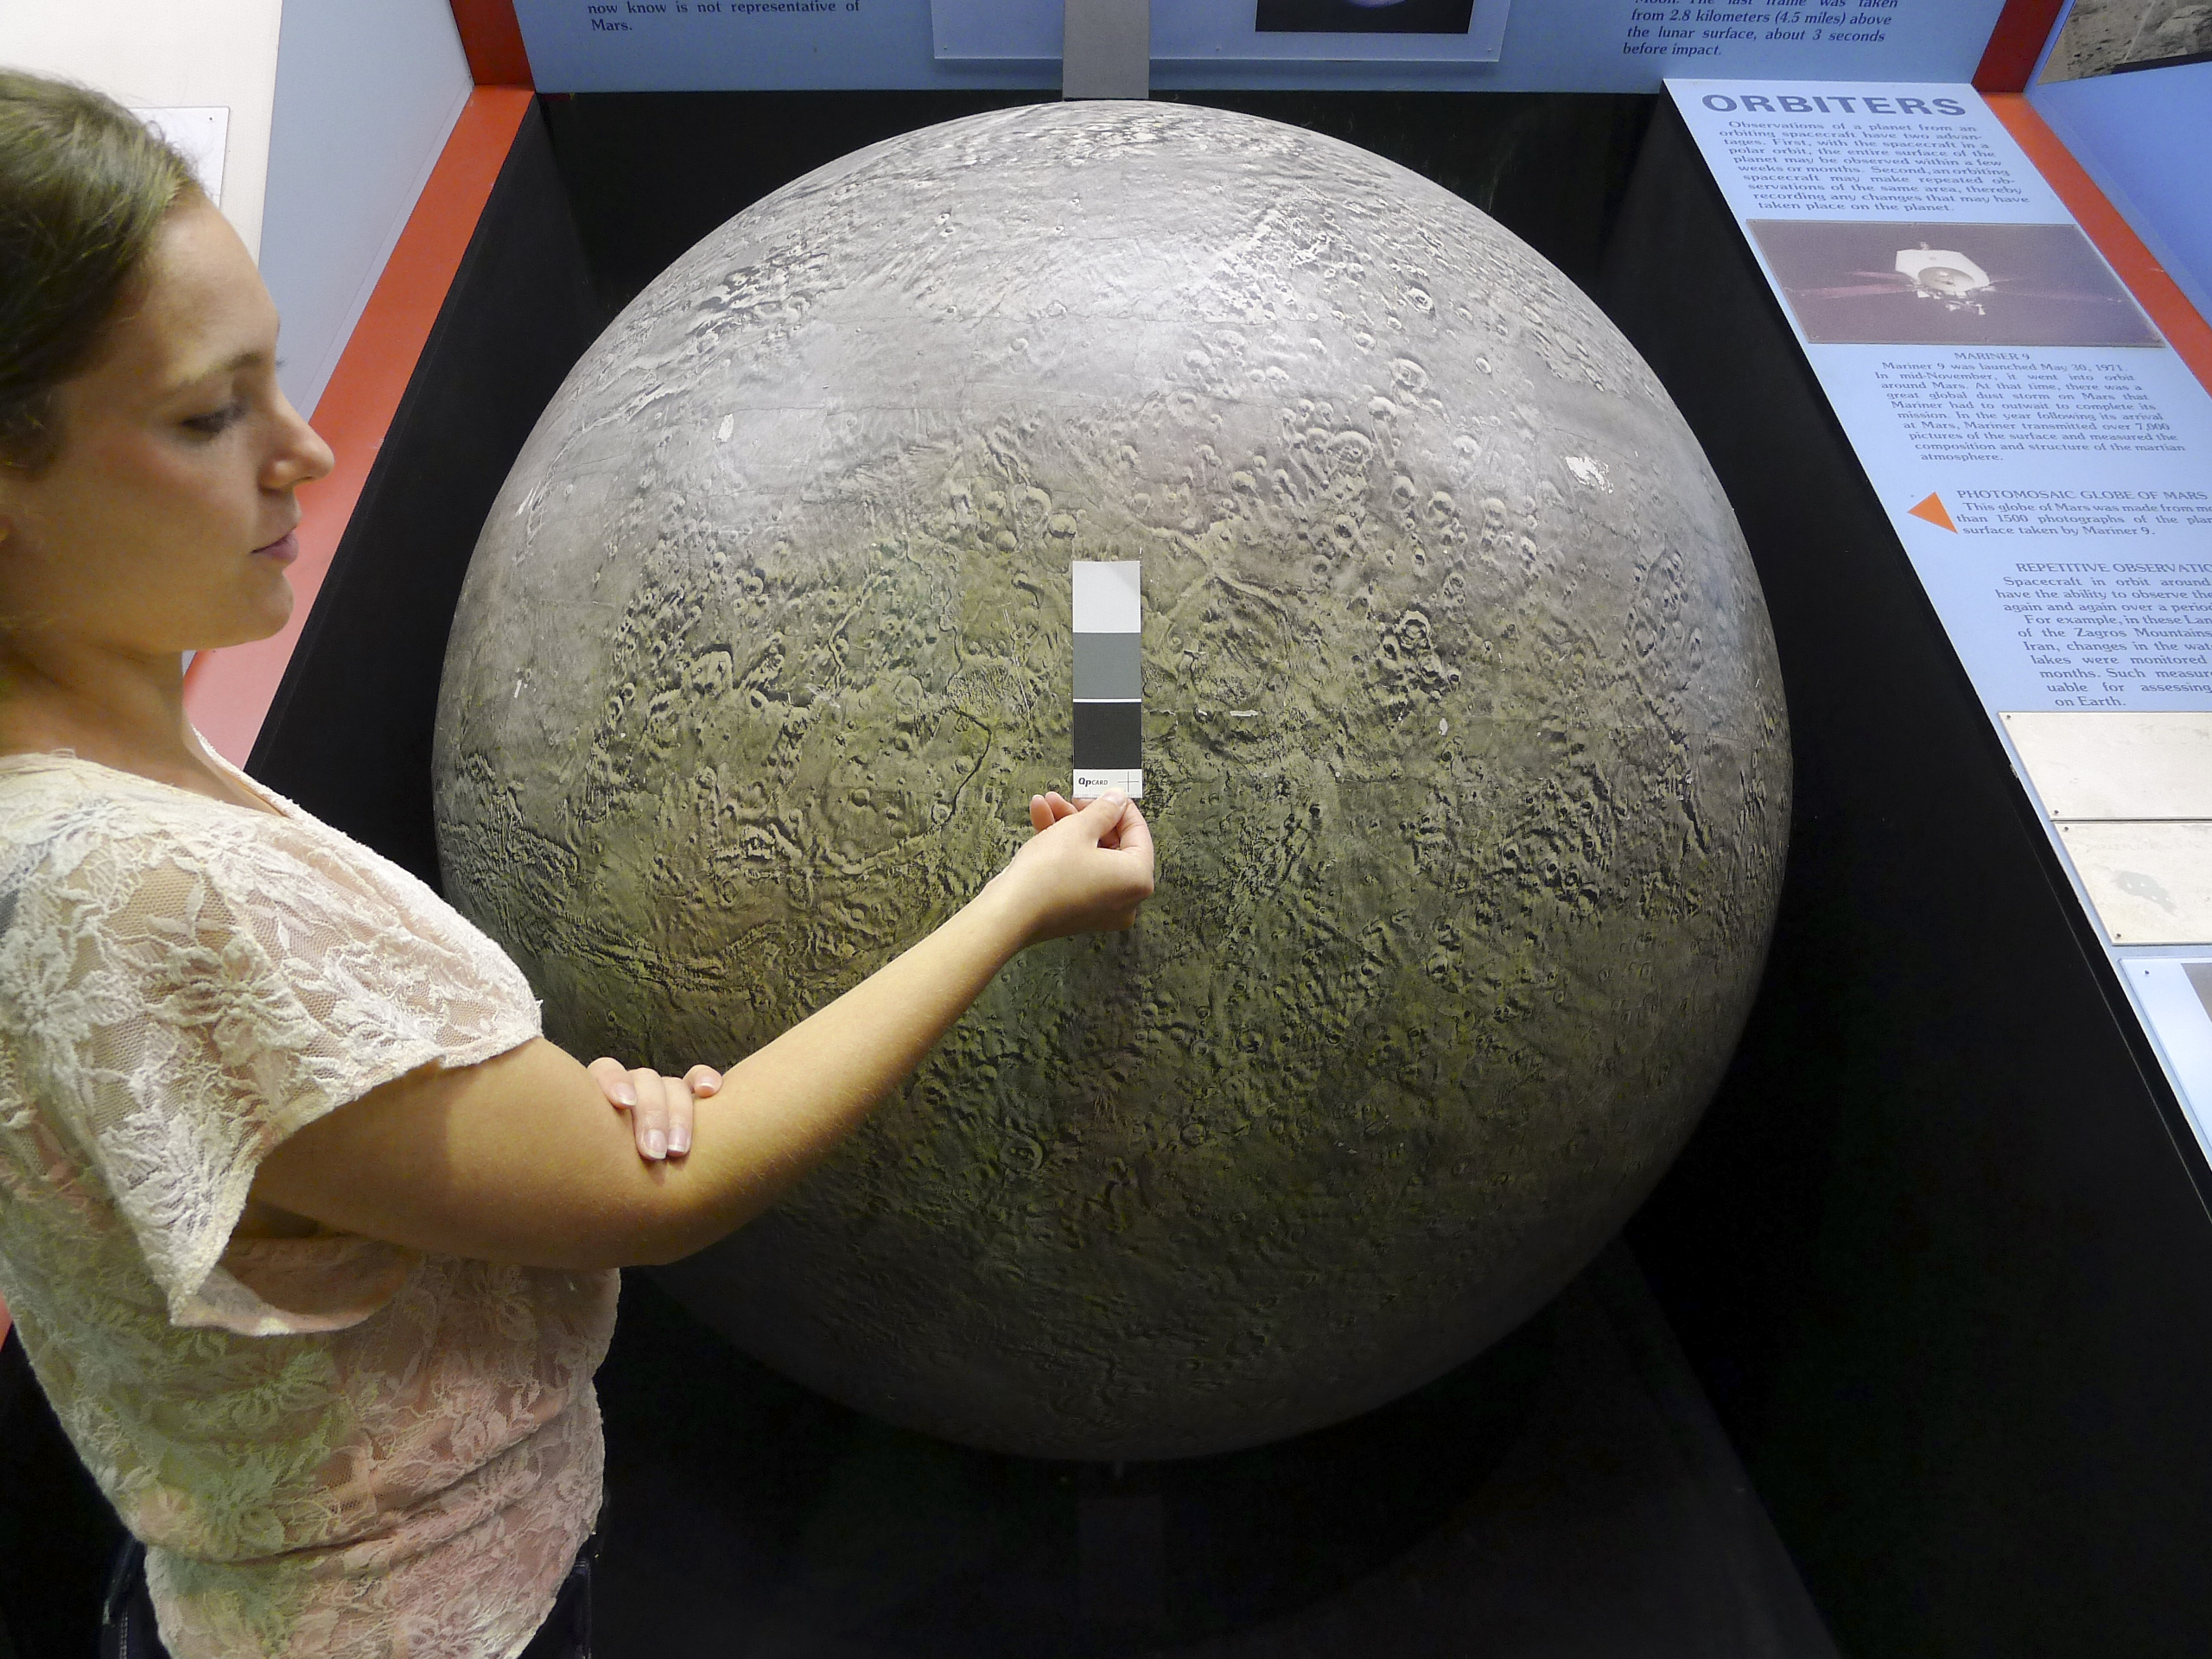 A person holds up a paint sample marker to a large, circular object.